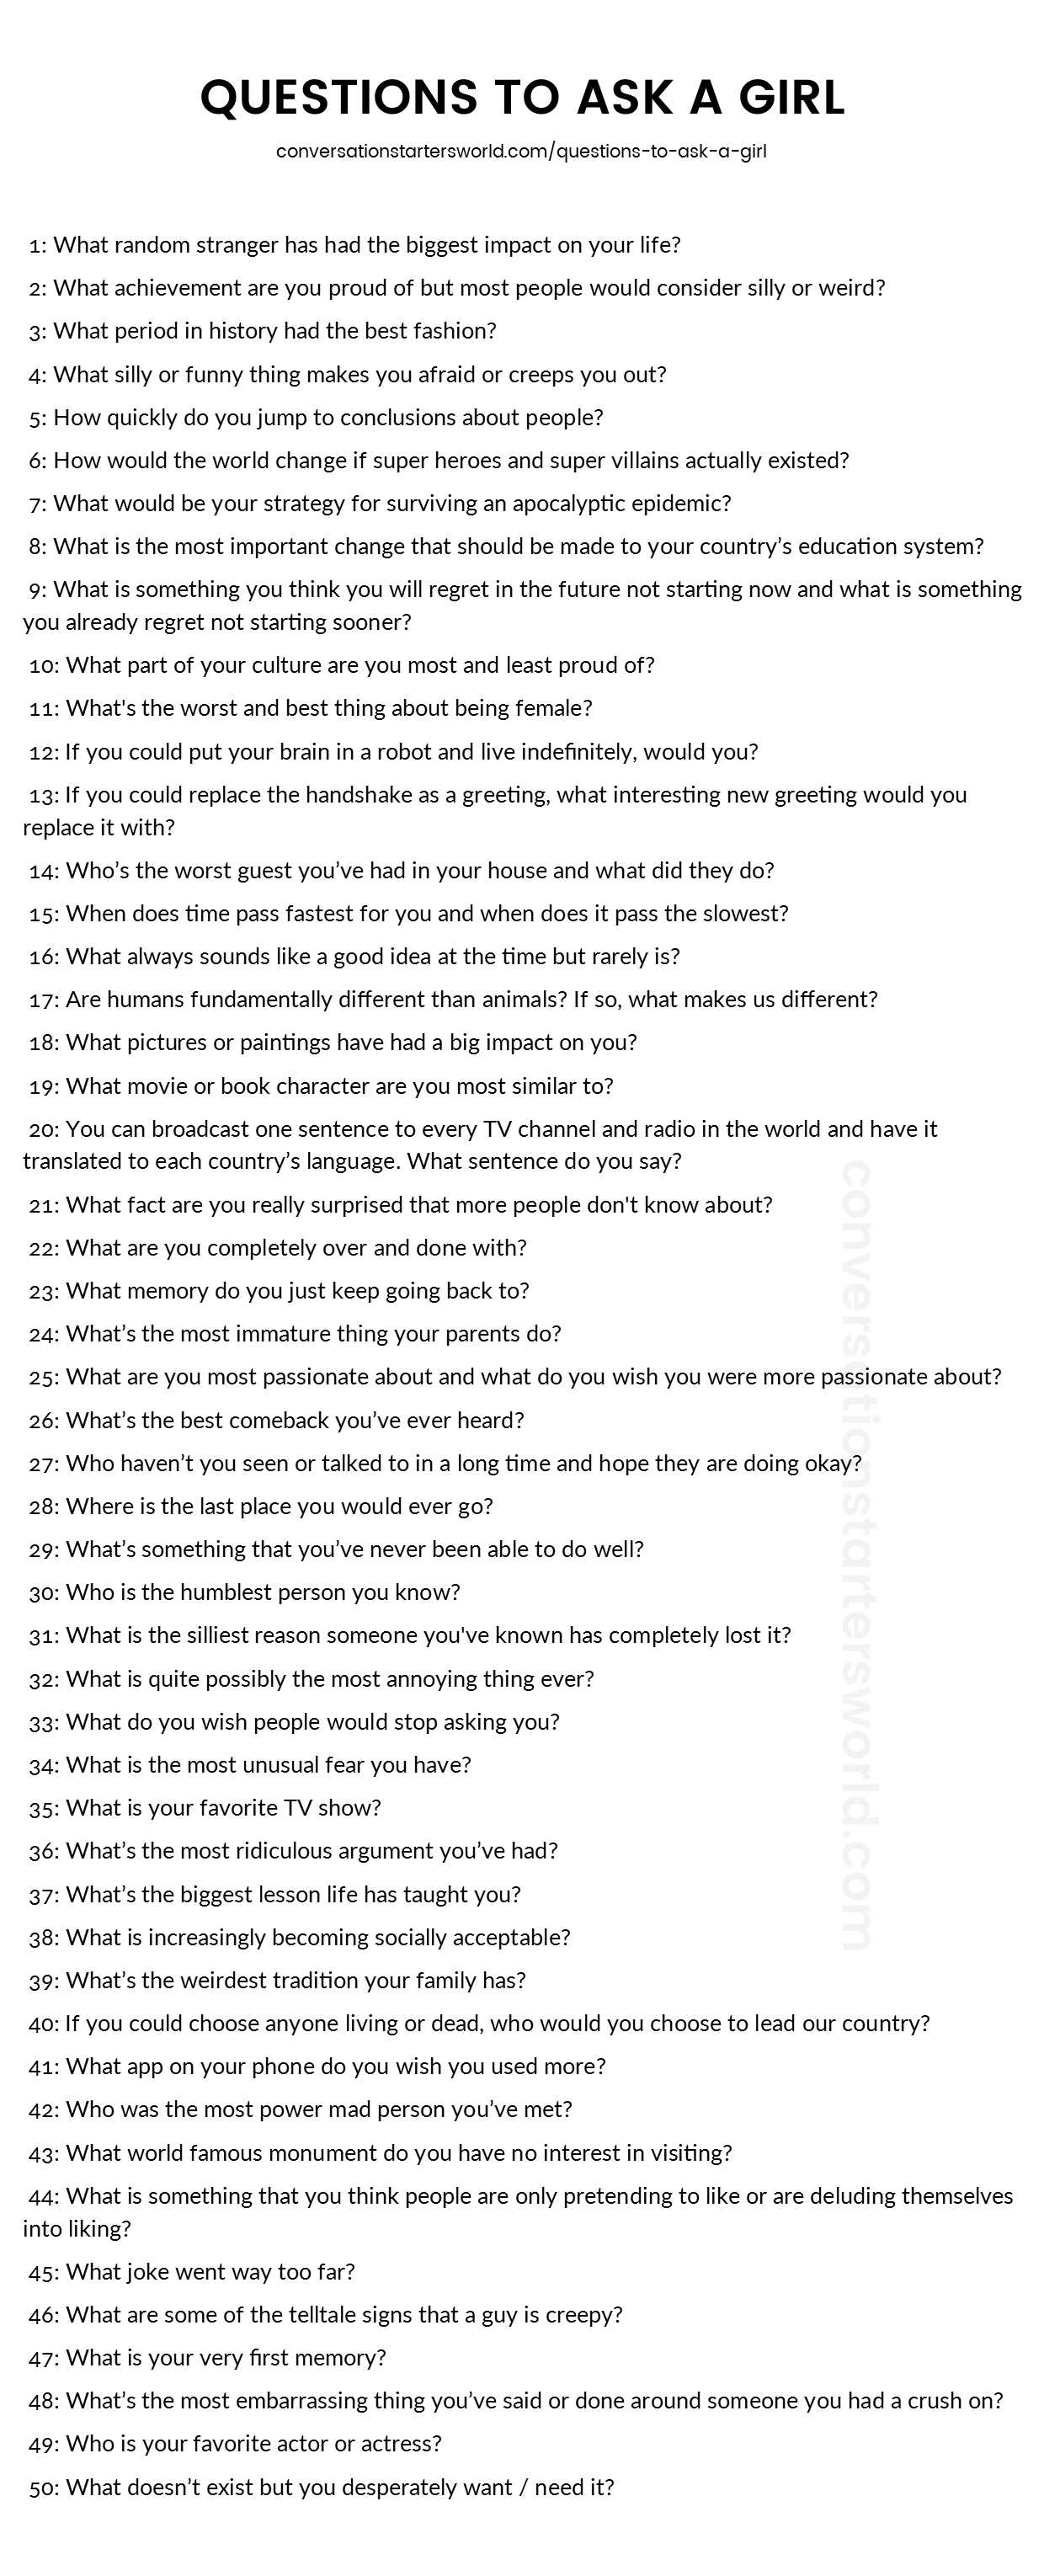 Juicy Questions To Ask A Girl